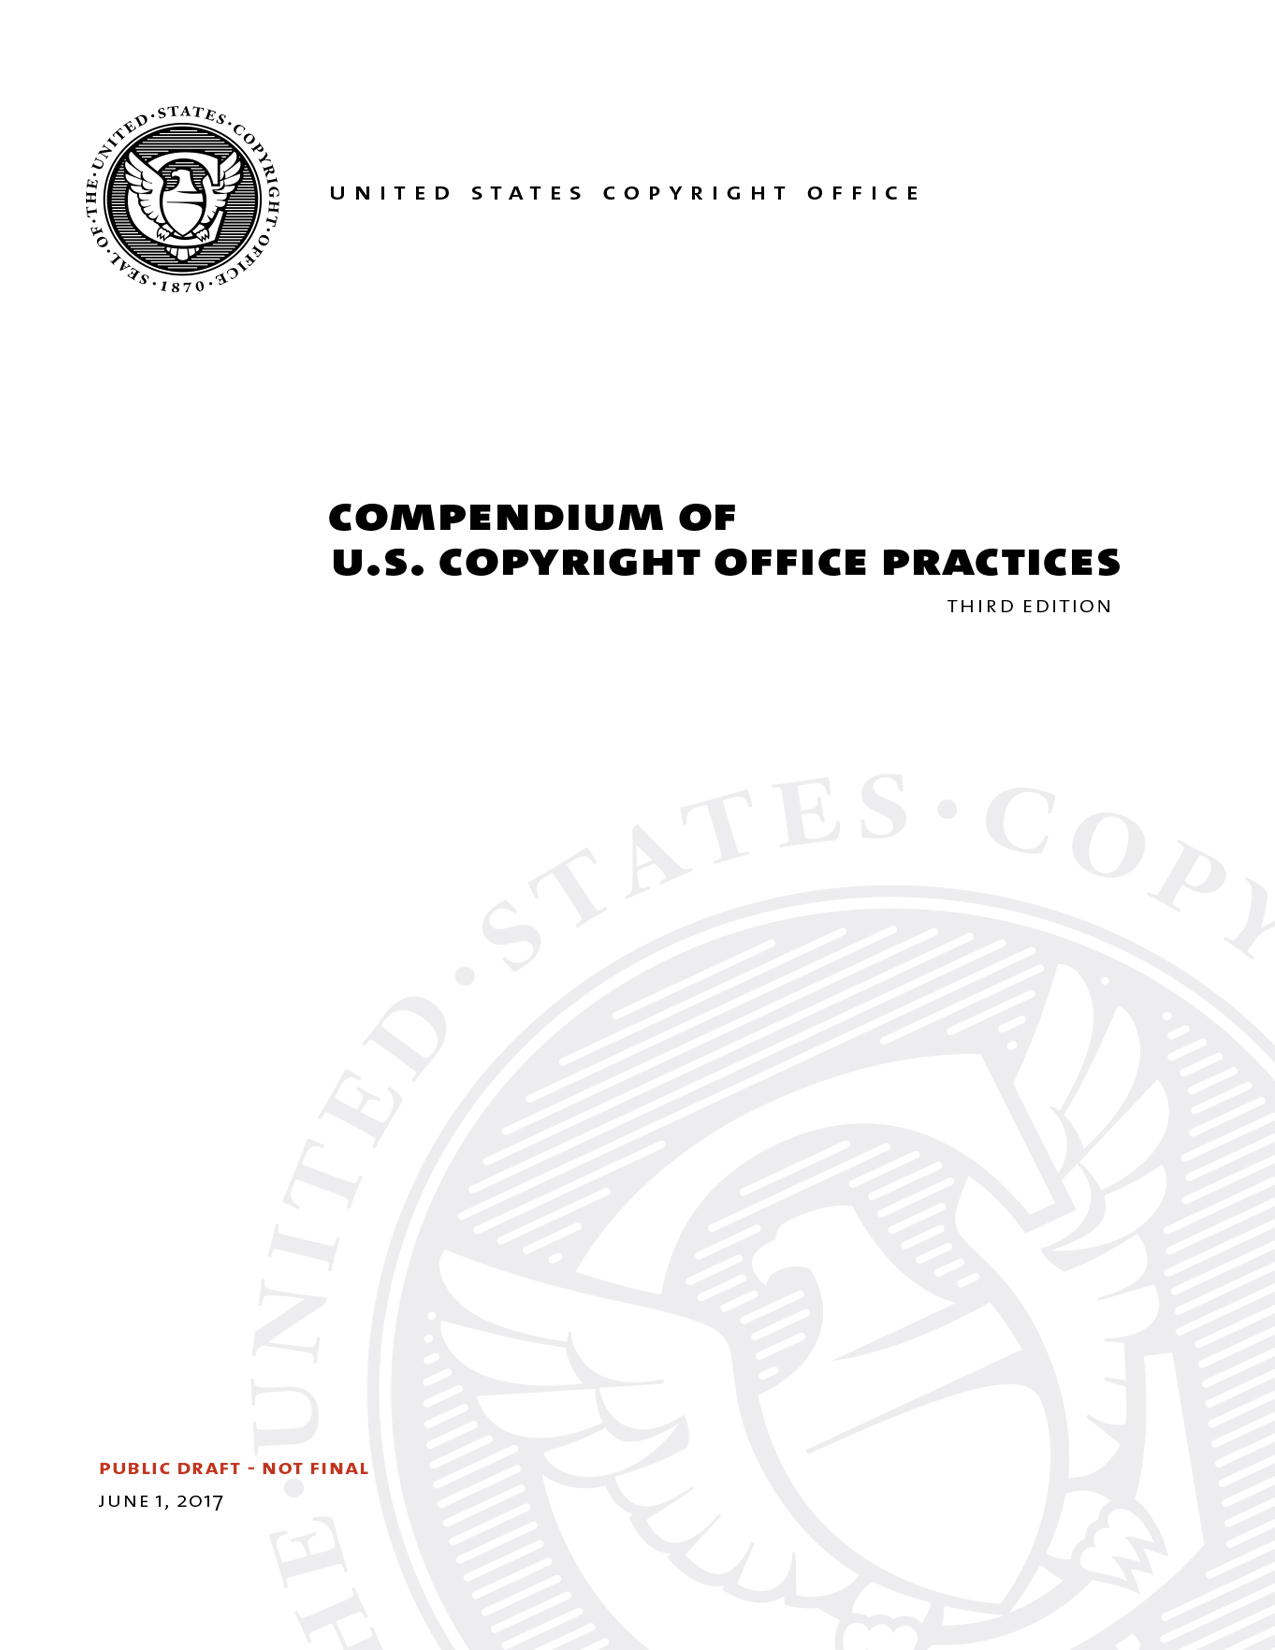 Compendium of U.S. Copyright Office Practices, Third Edition Cover Page